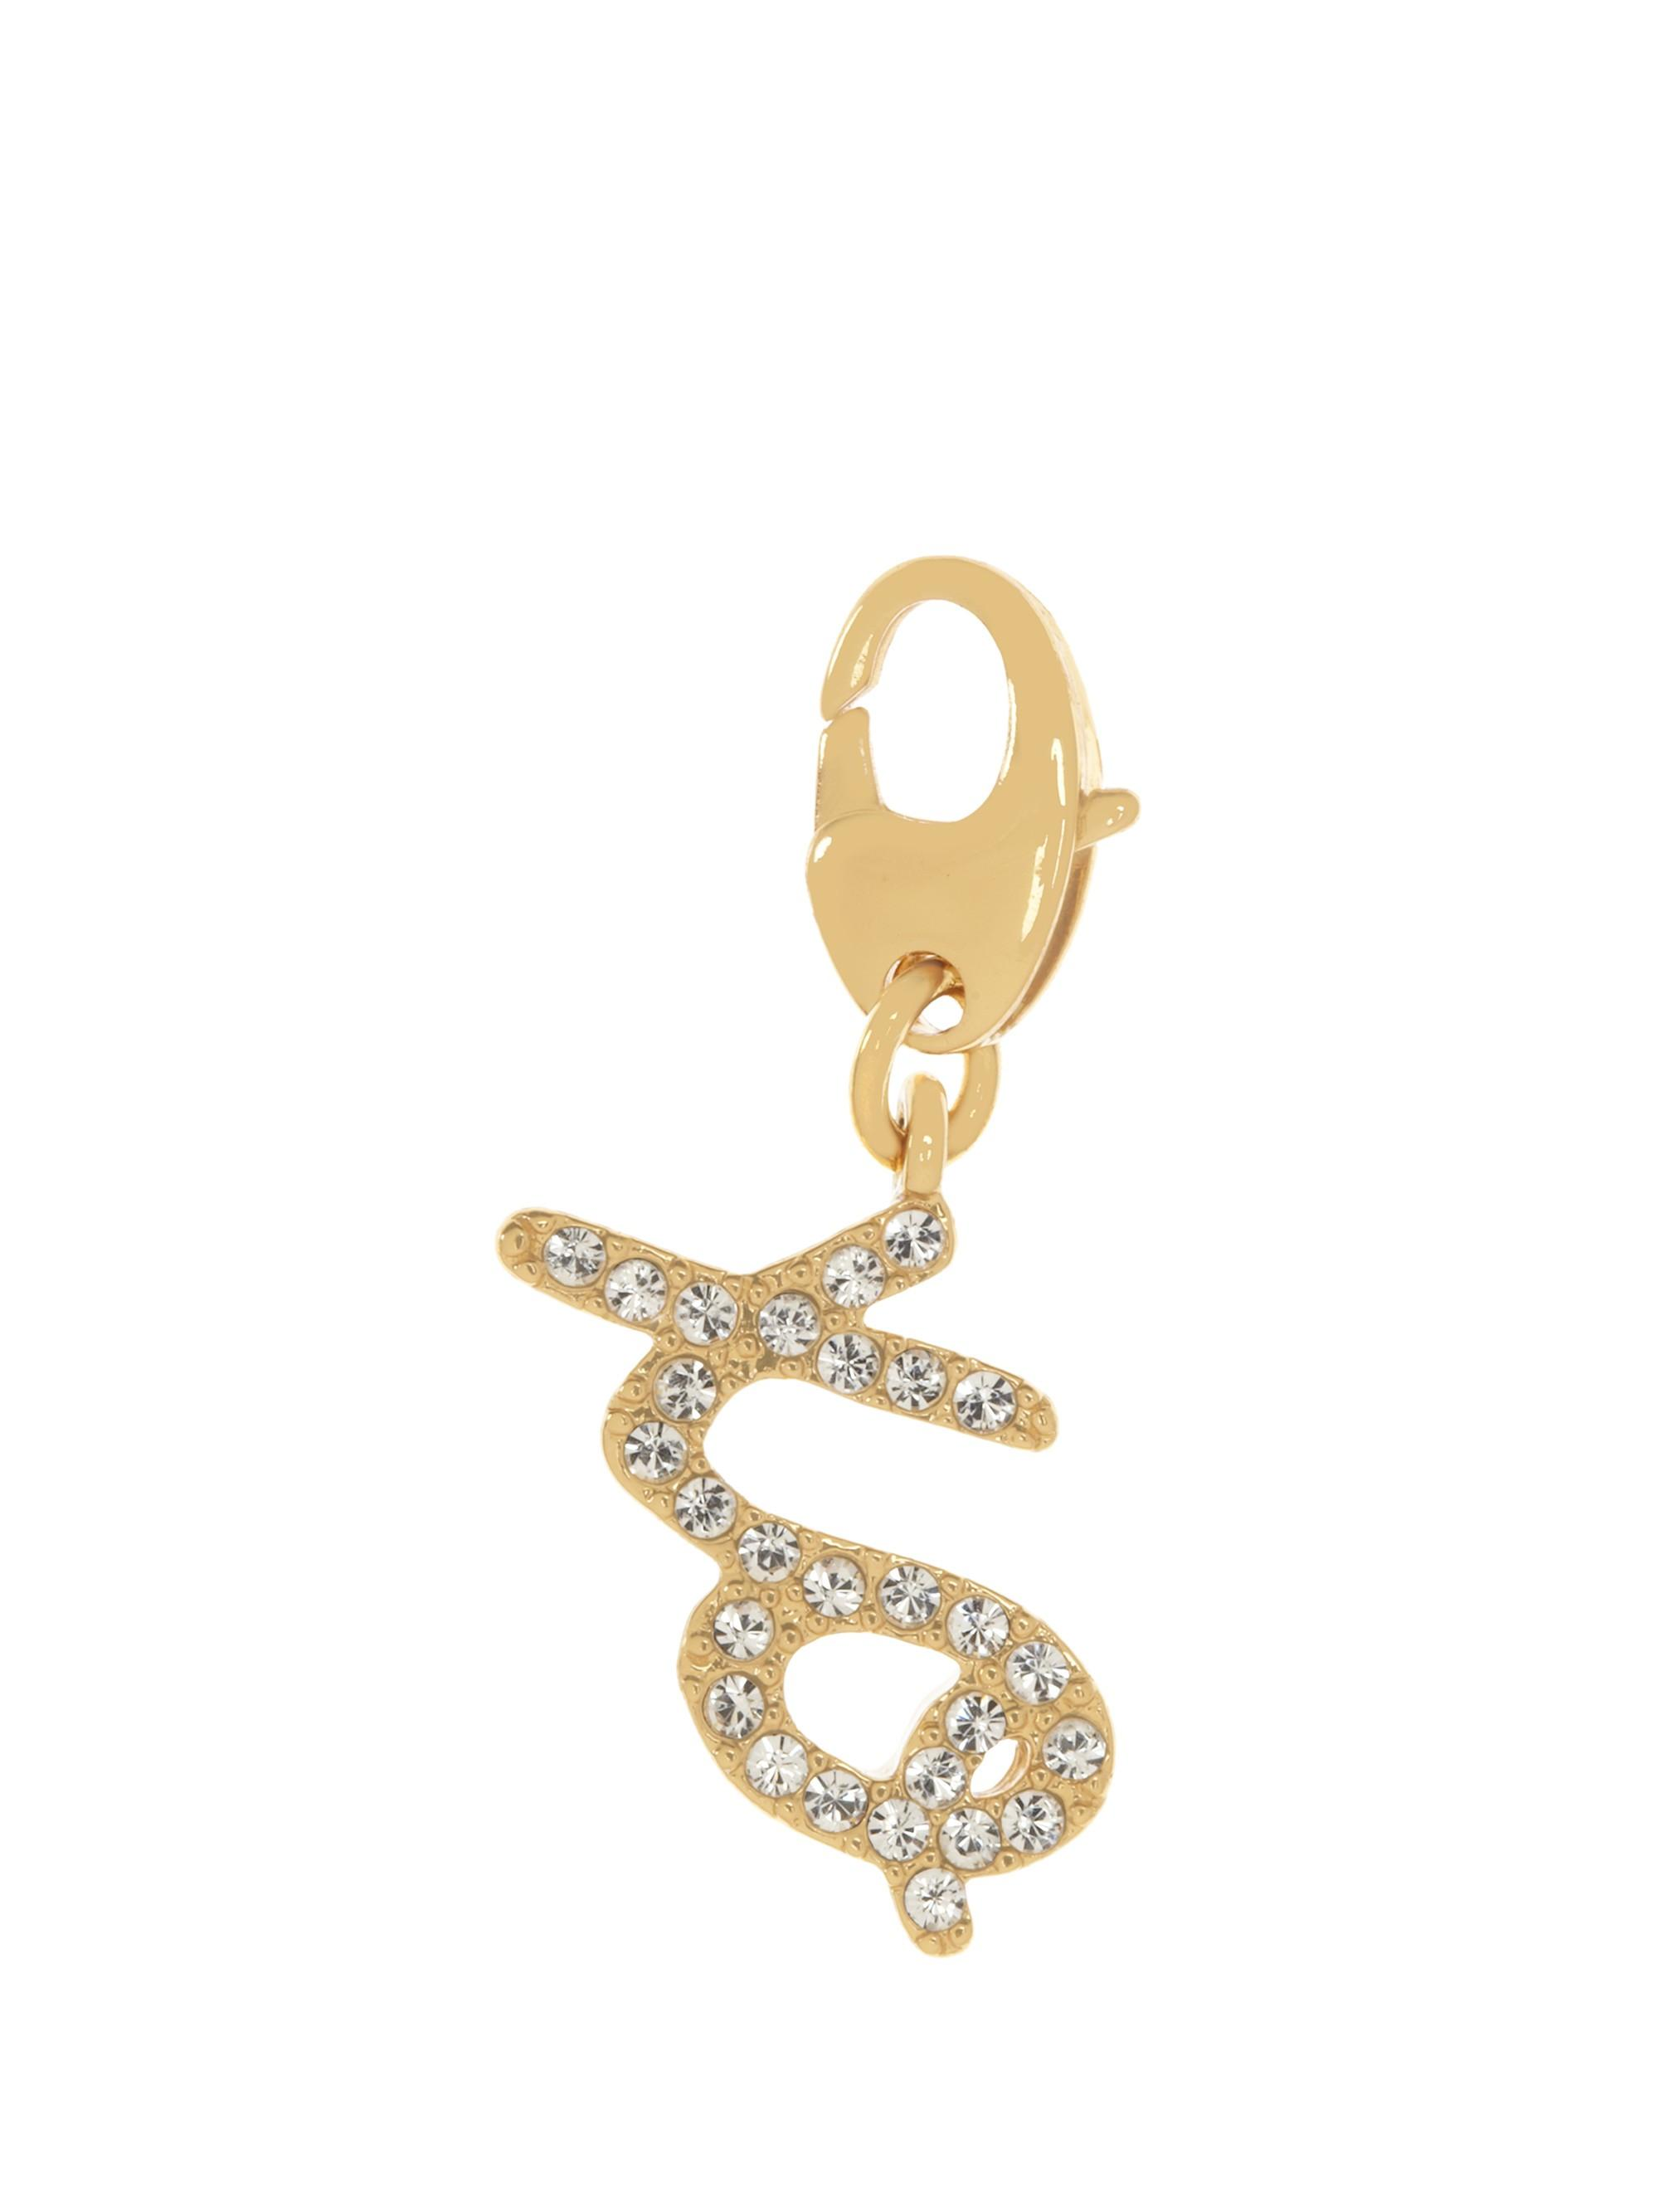 Kate Spade Pave Xo Charm In Clear/gold